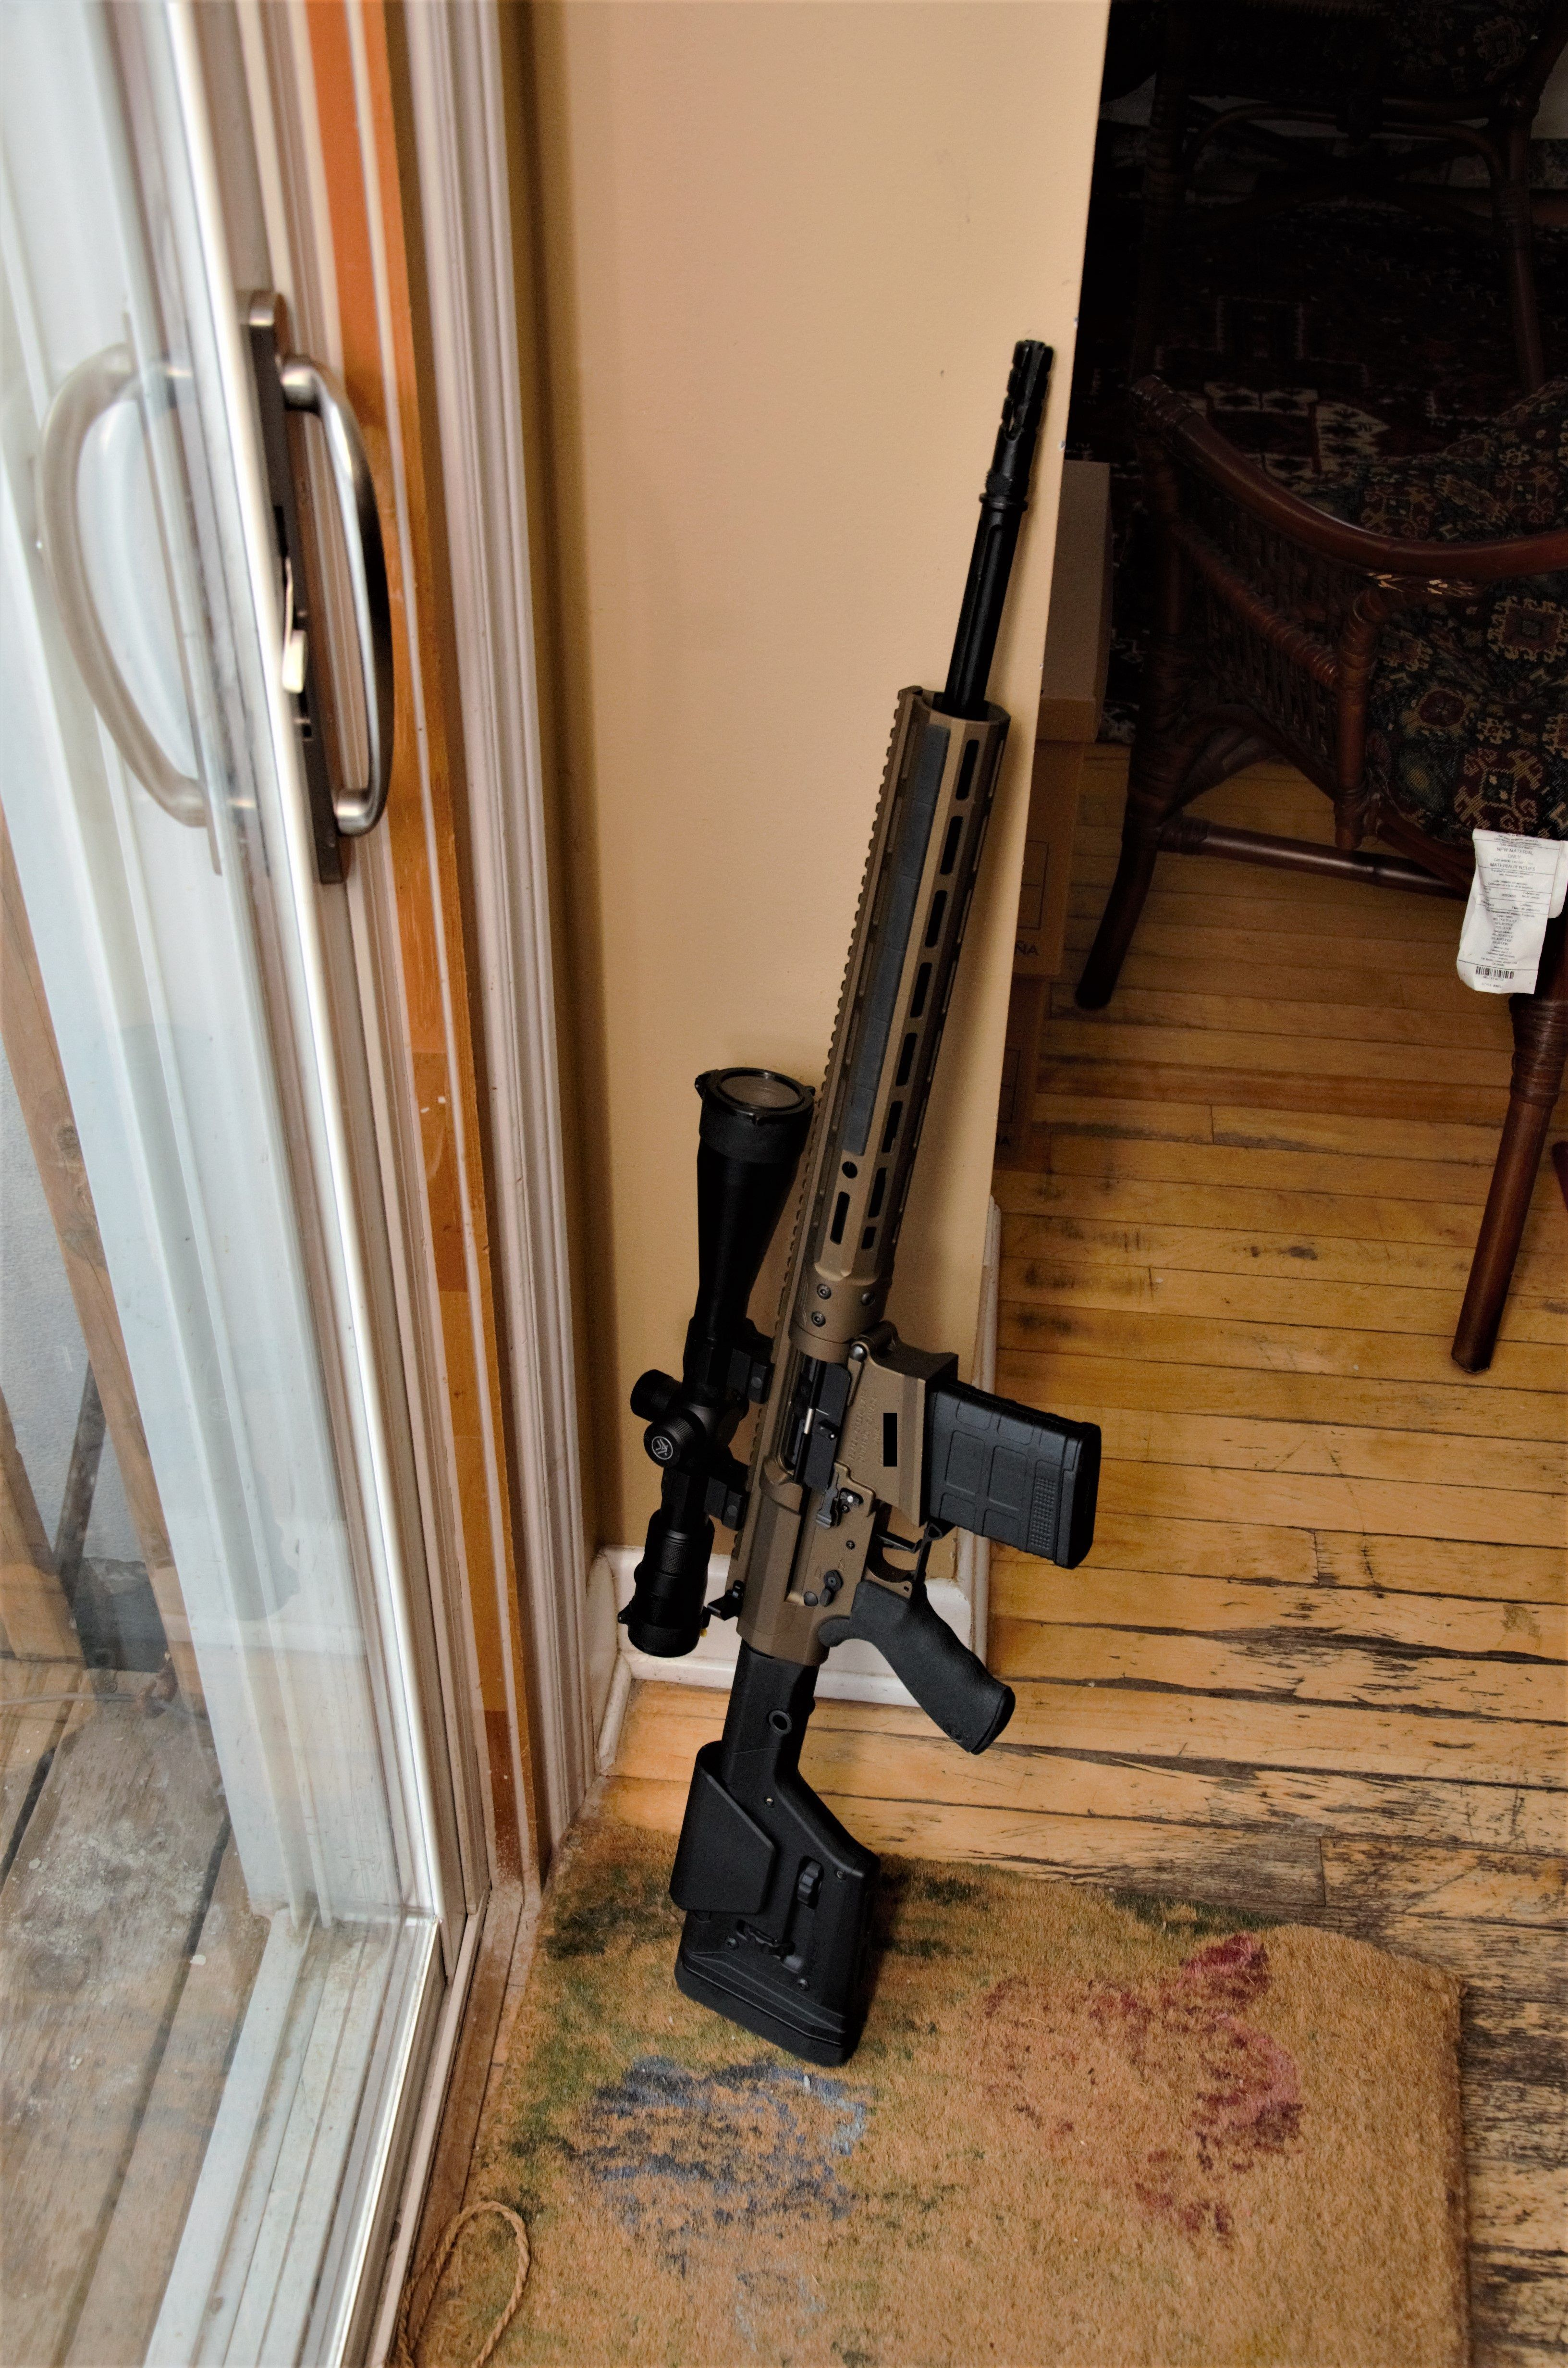 Something A Little Different Ar 15s Are Restricted In Canada So We Started Making Modernized Ar 102s Ar 10 Here Is Military Guns Badass Guns Guns And Ammo